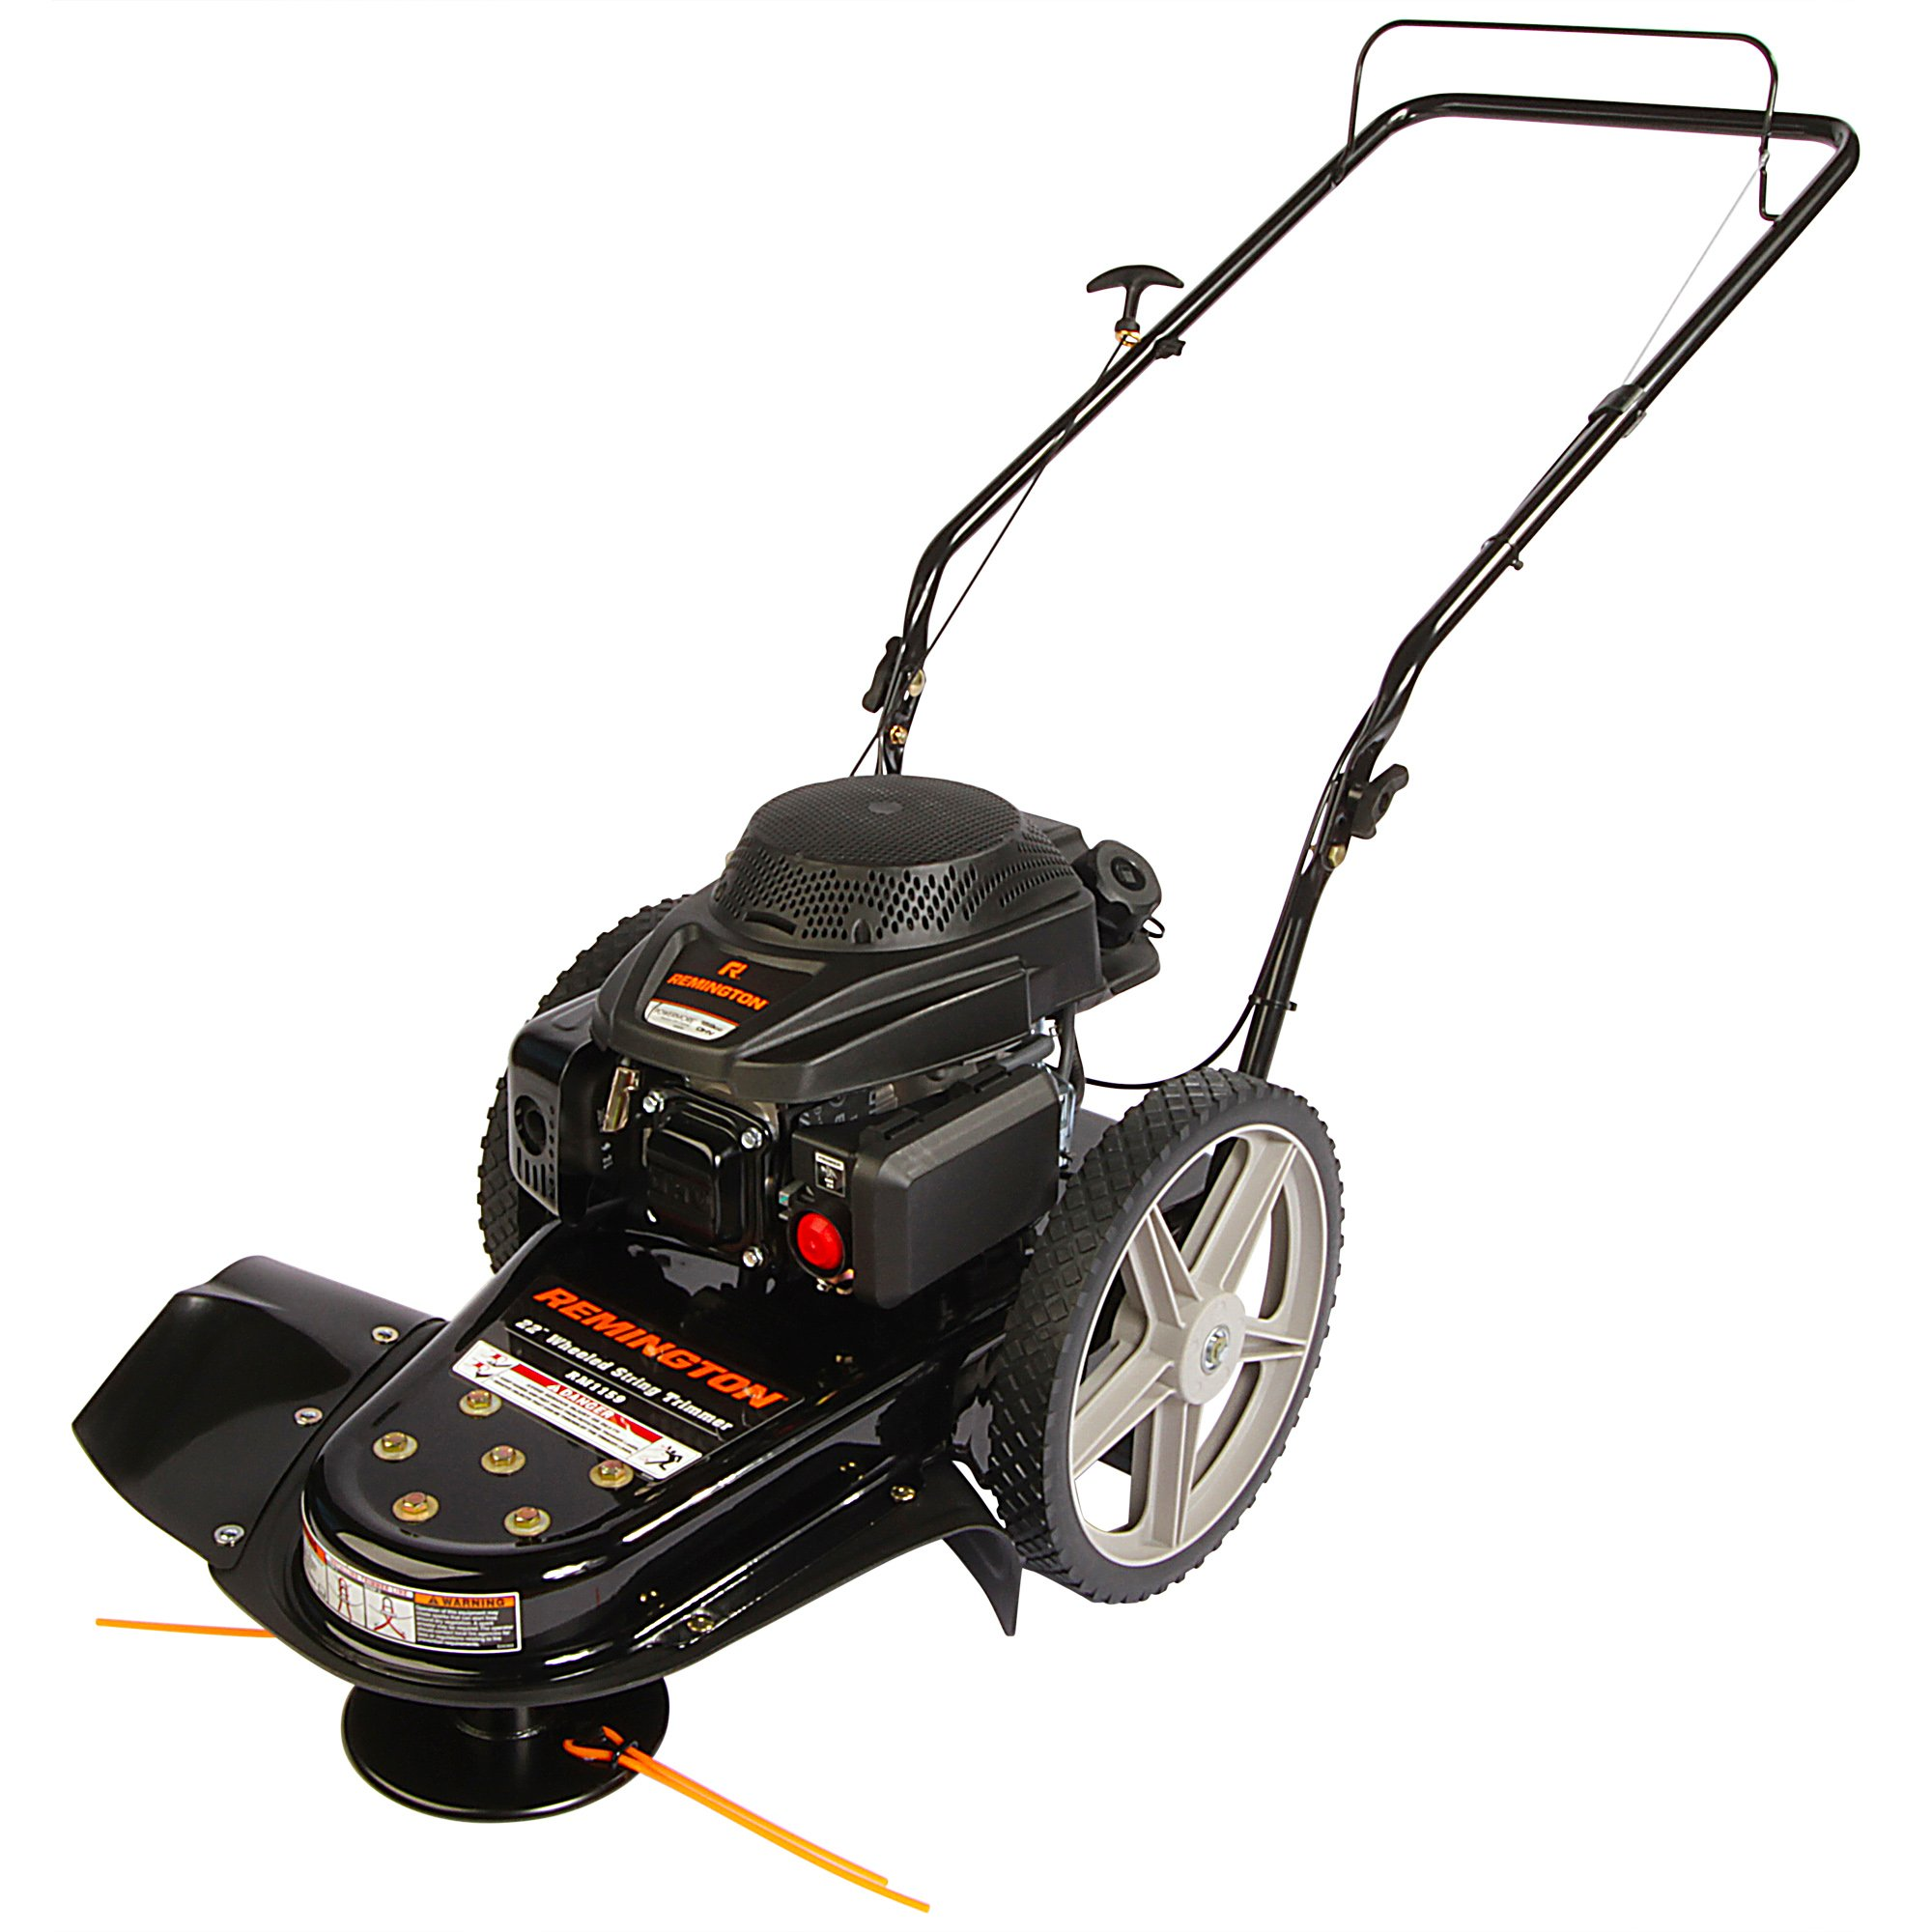 Remington RM1159 Walk-Behind High-Wheeled String Trimmer by Remington